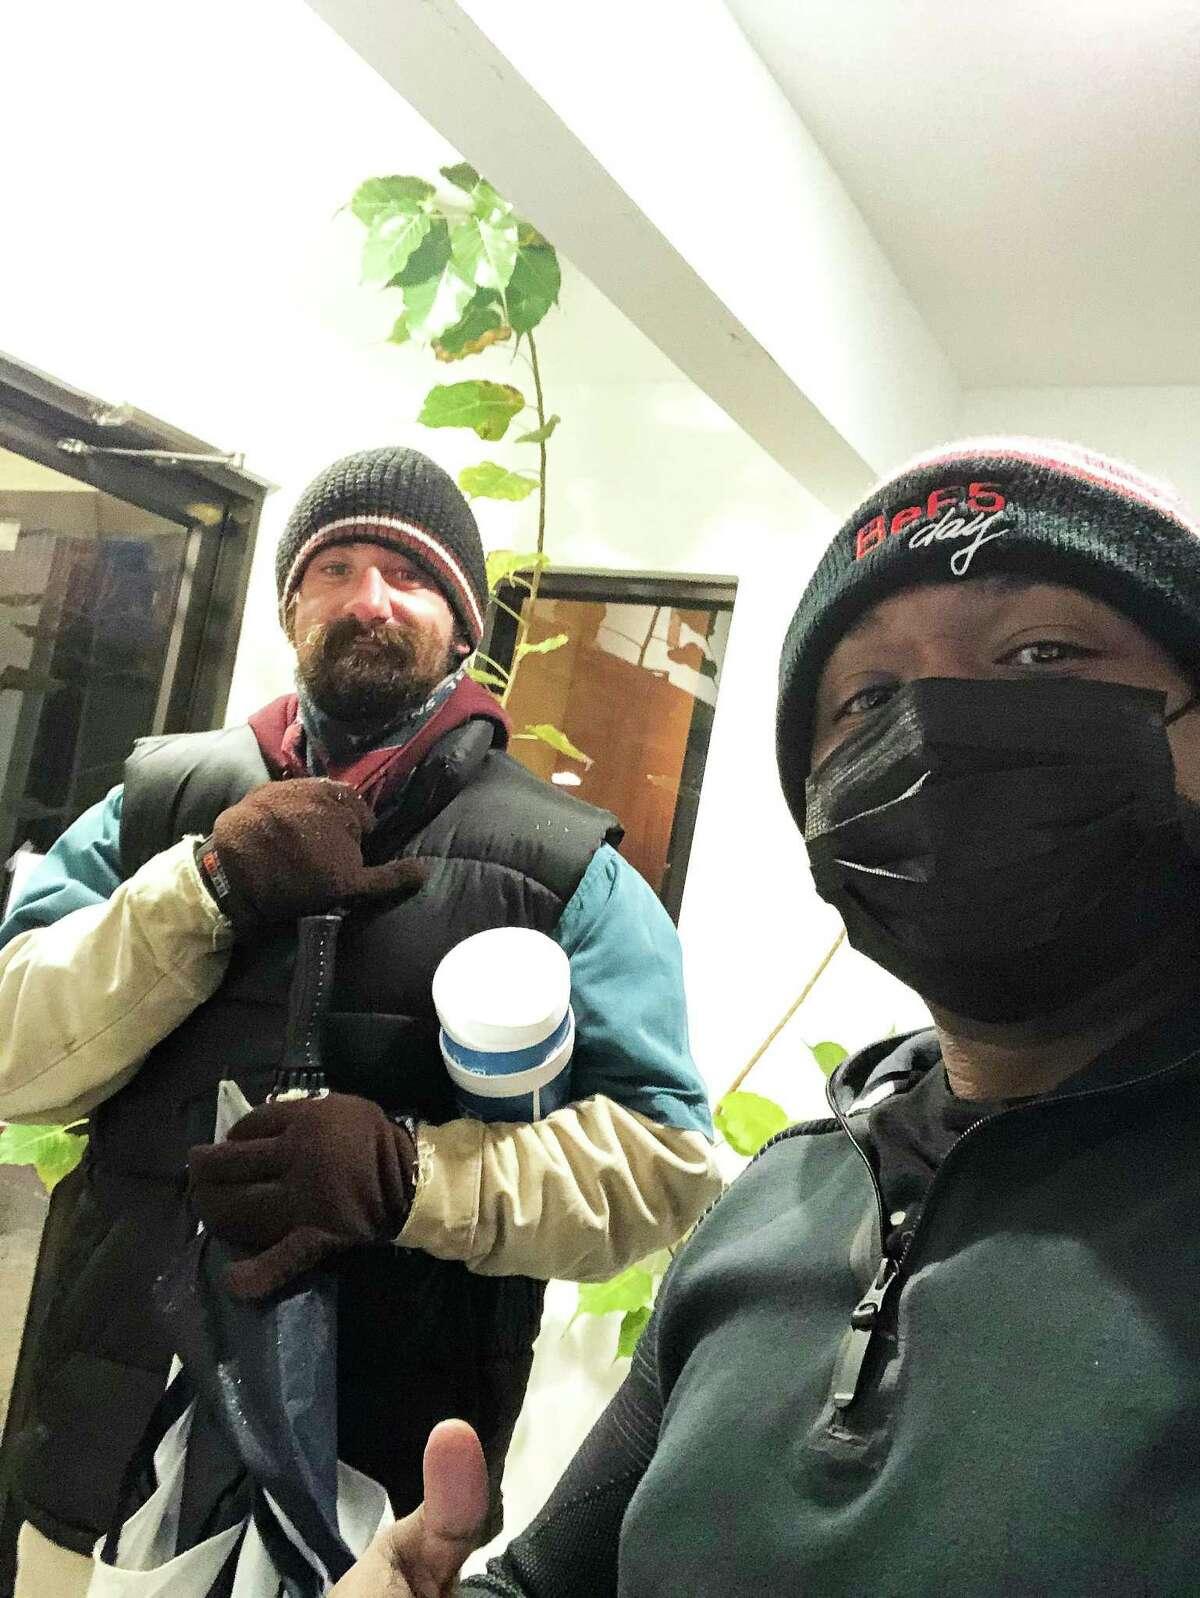 Corey is with one of the homeless men he helped by getting him a hotel room to stay in during the freeze back in February.